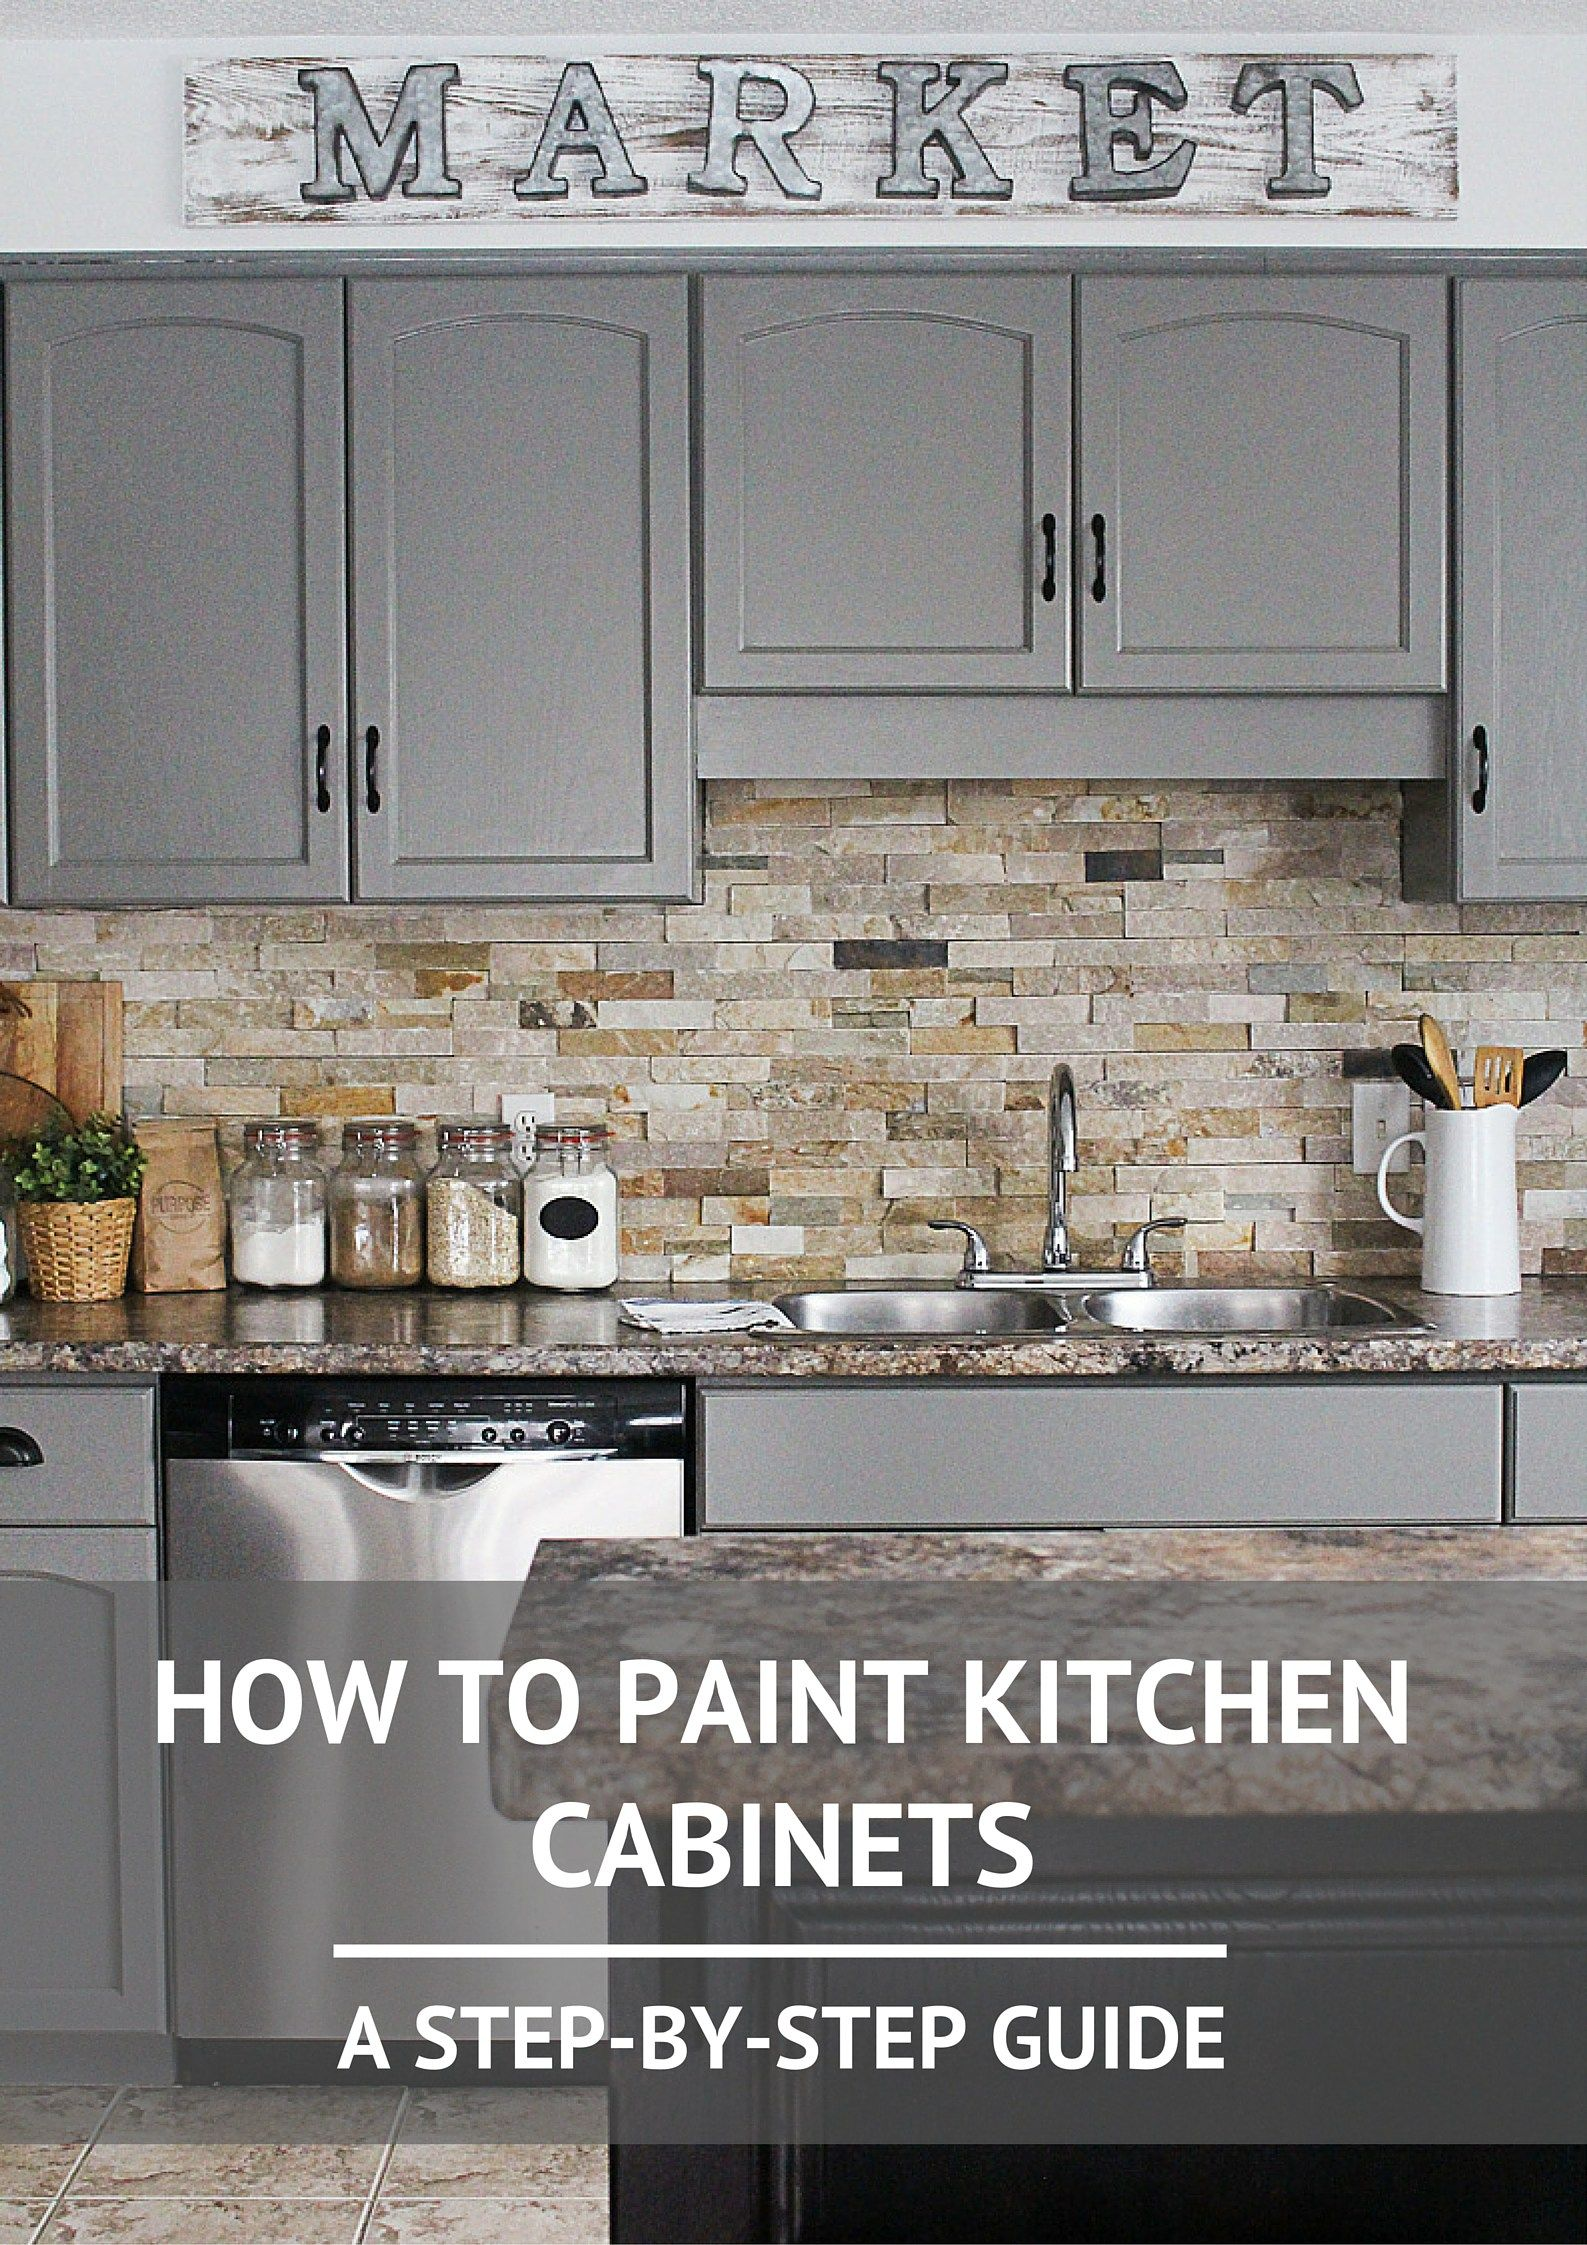 how to paint kitchen cabinets step guide and kitchens how to paint kitchen cabinets